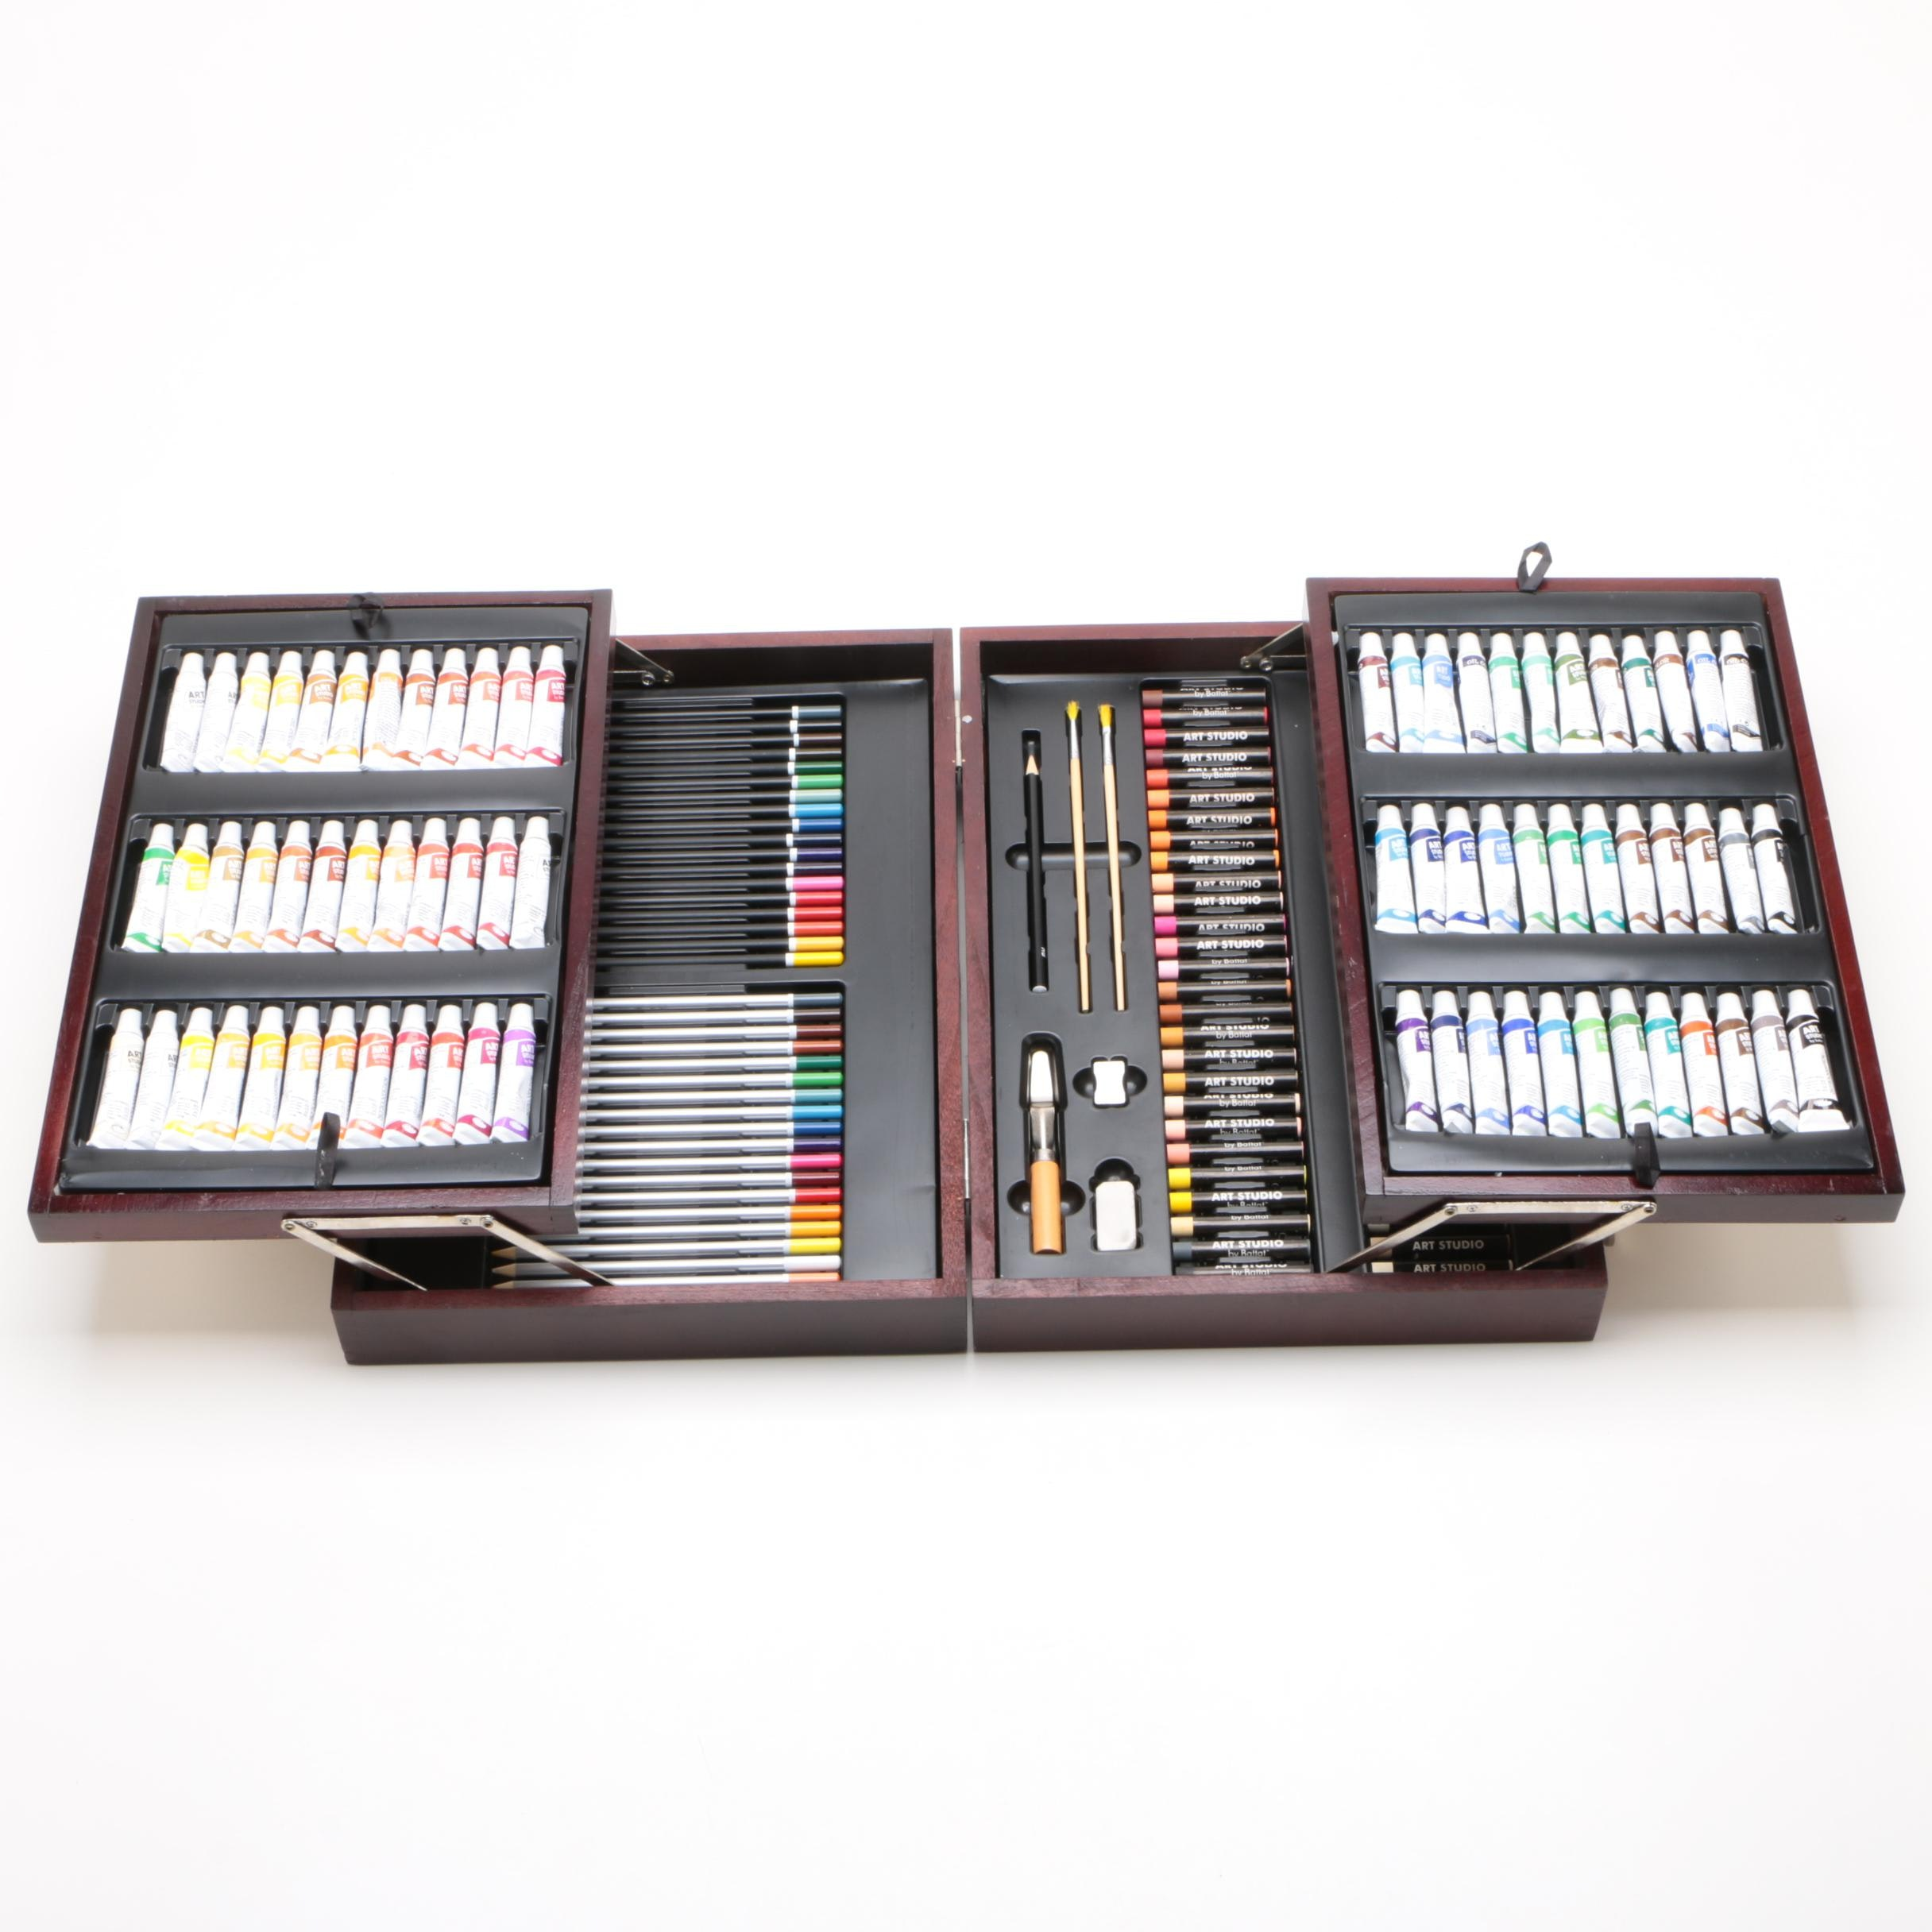 150 Piece Art Studio Painting and Drawing Set by Battat